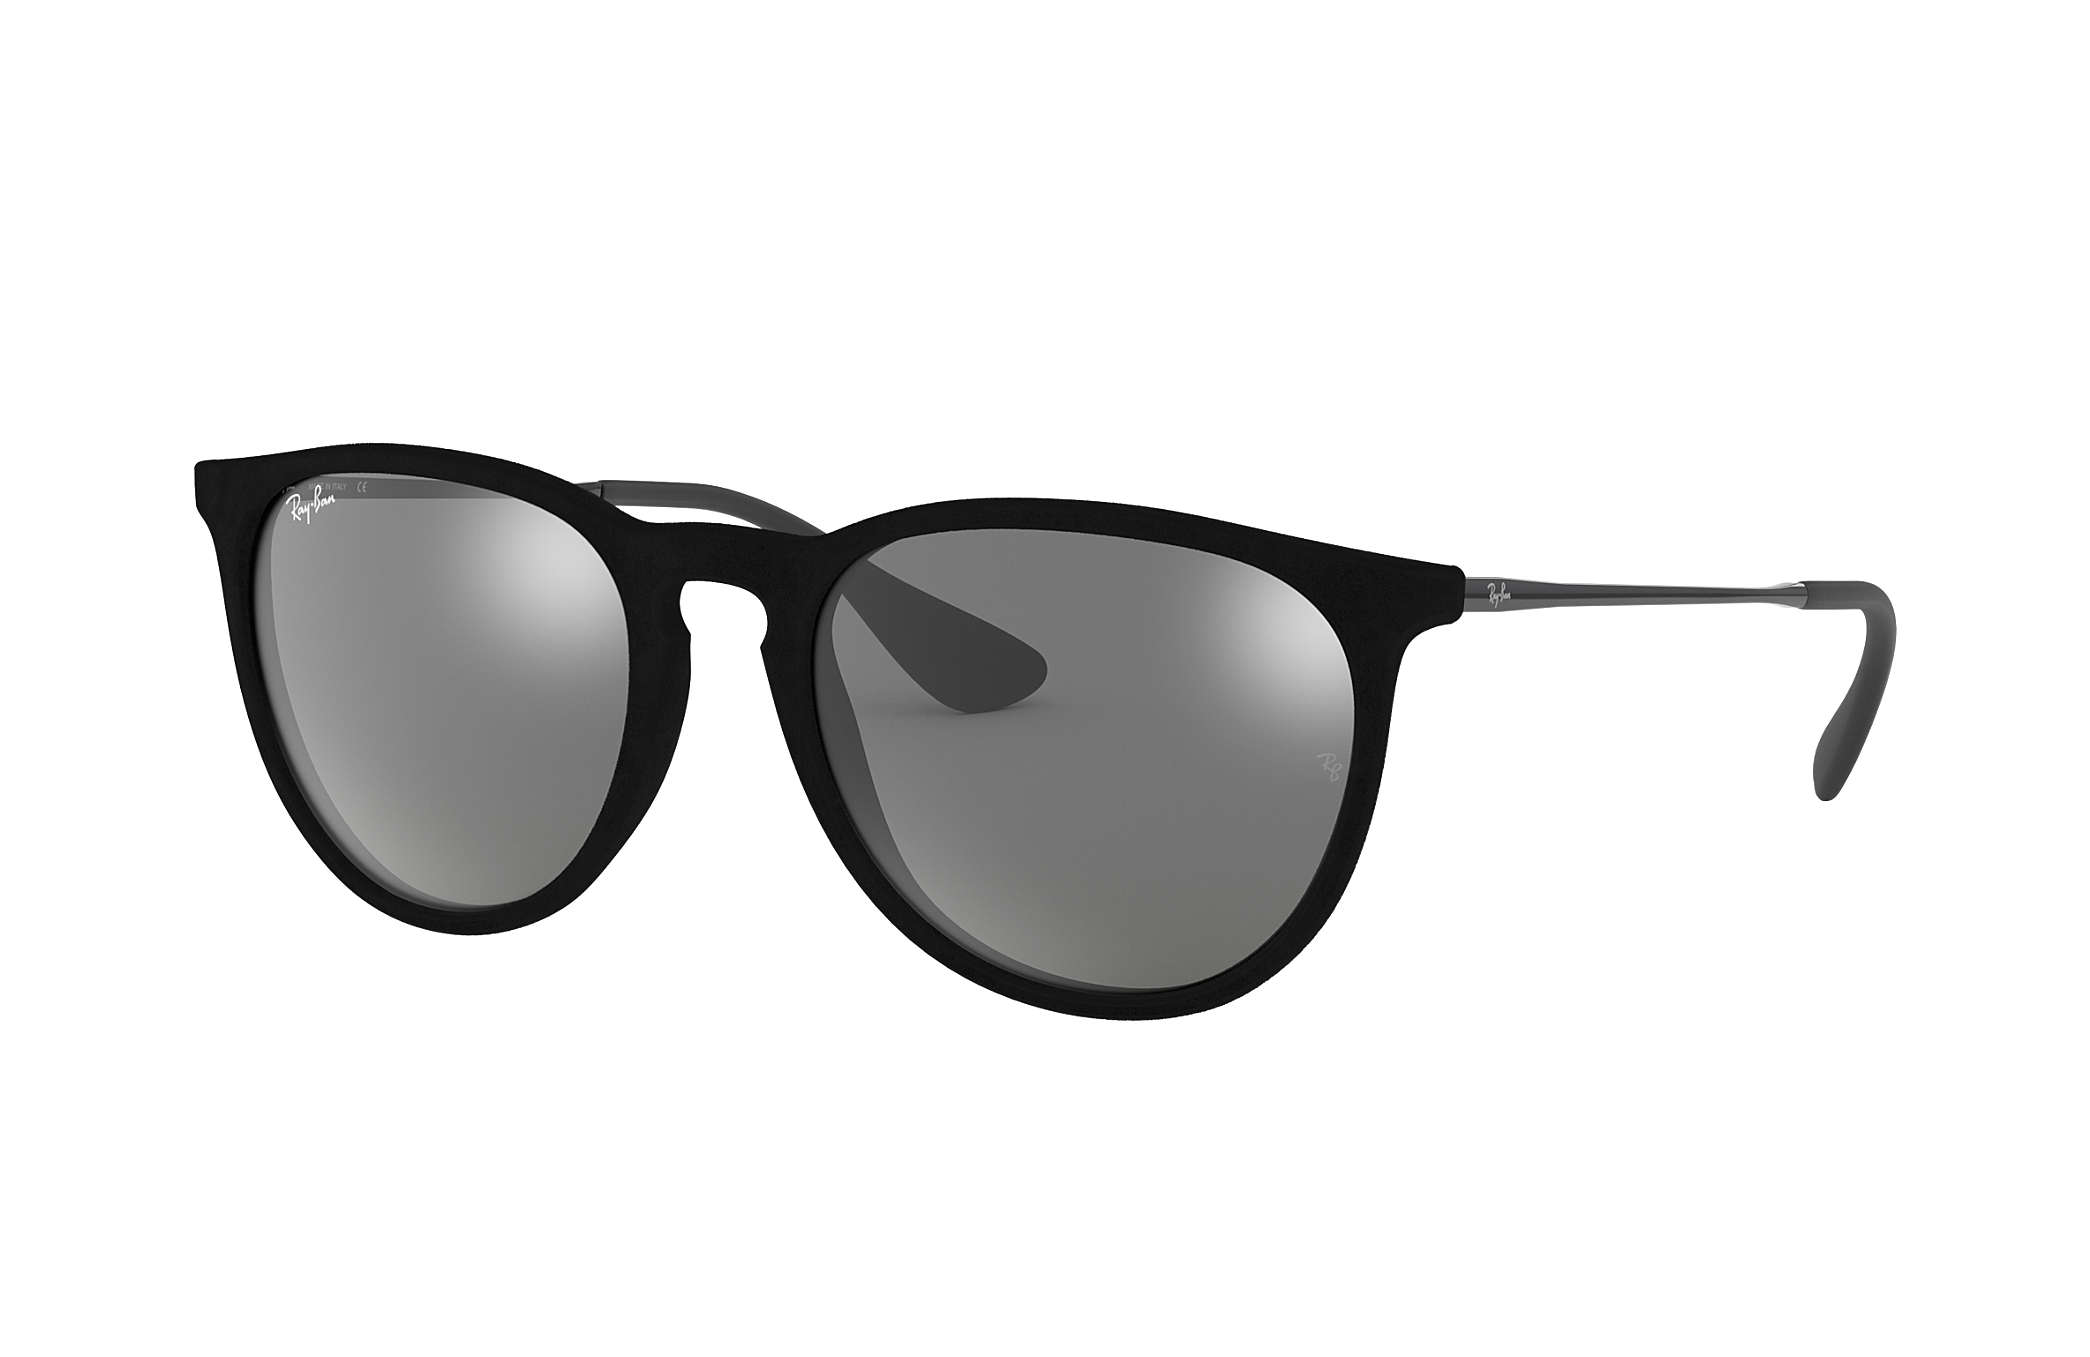 Ray-Ban Erika Velvet RB4171 Black Velvet - Nylon - Grey Lenses ... e8771e2aea